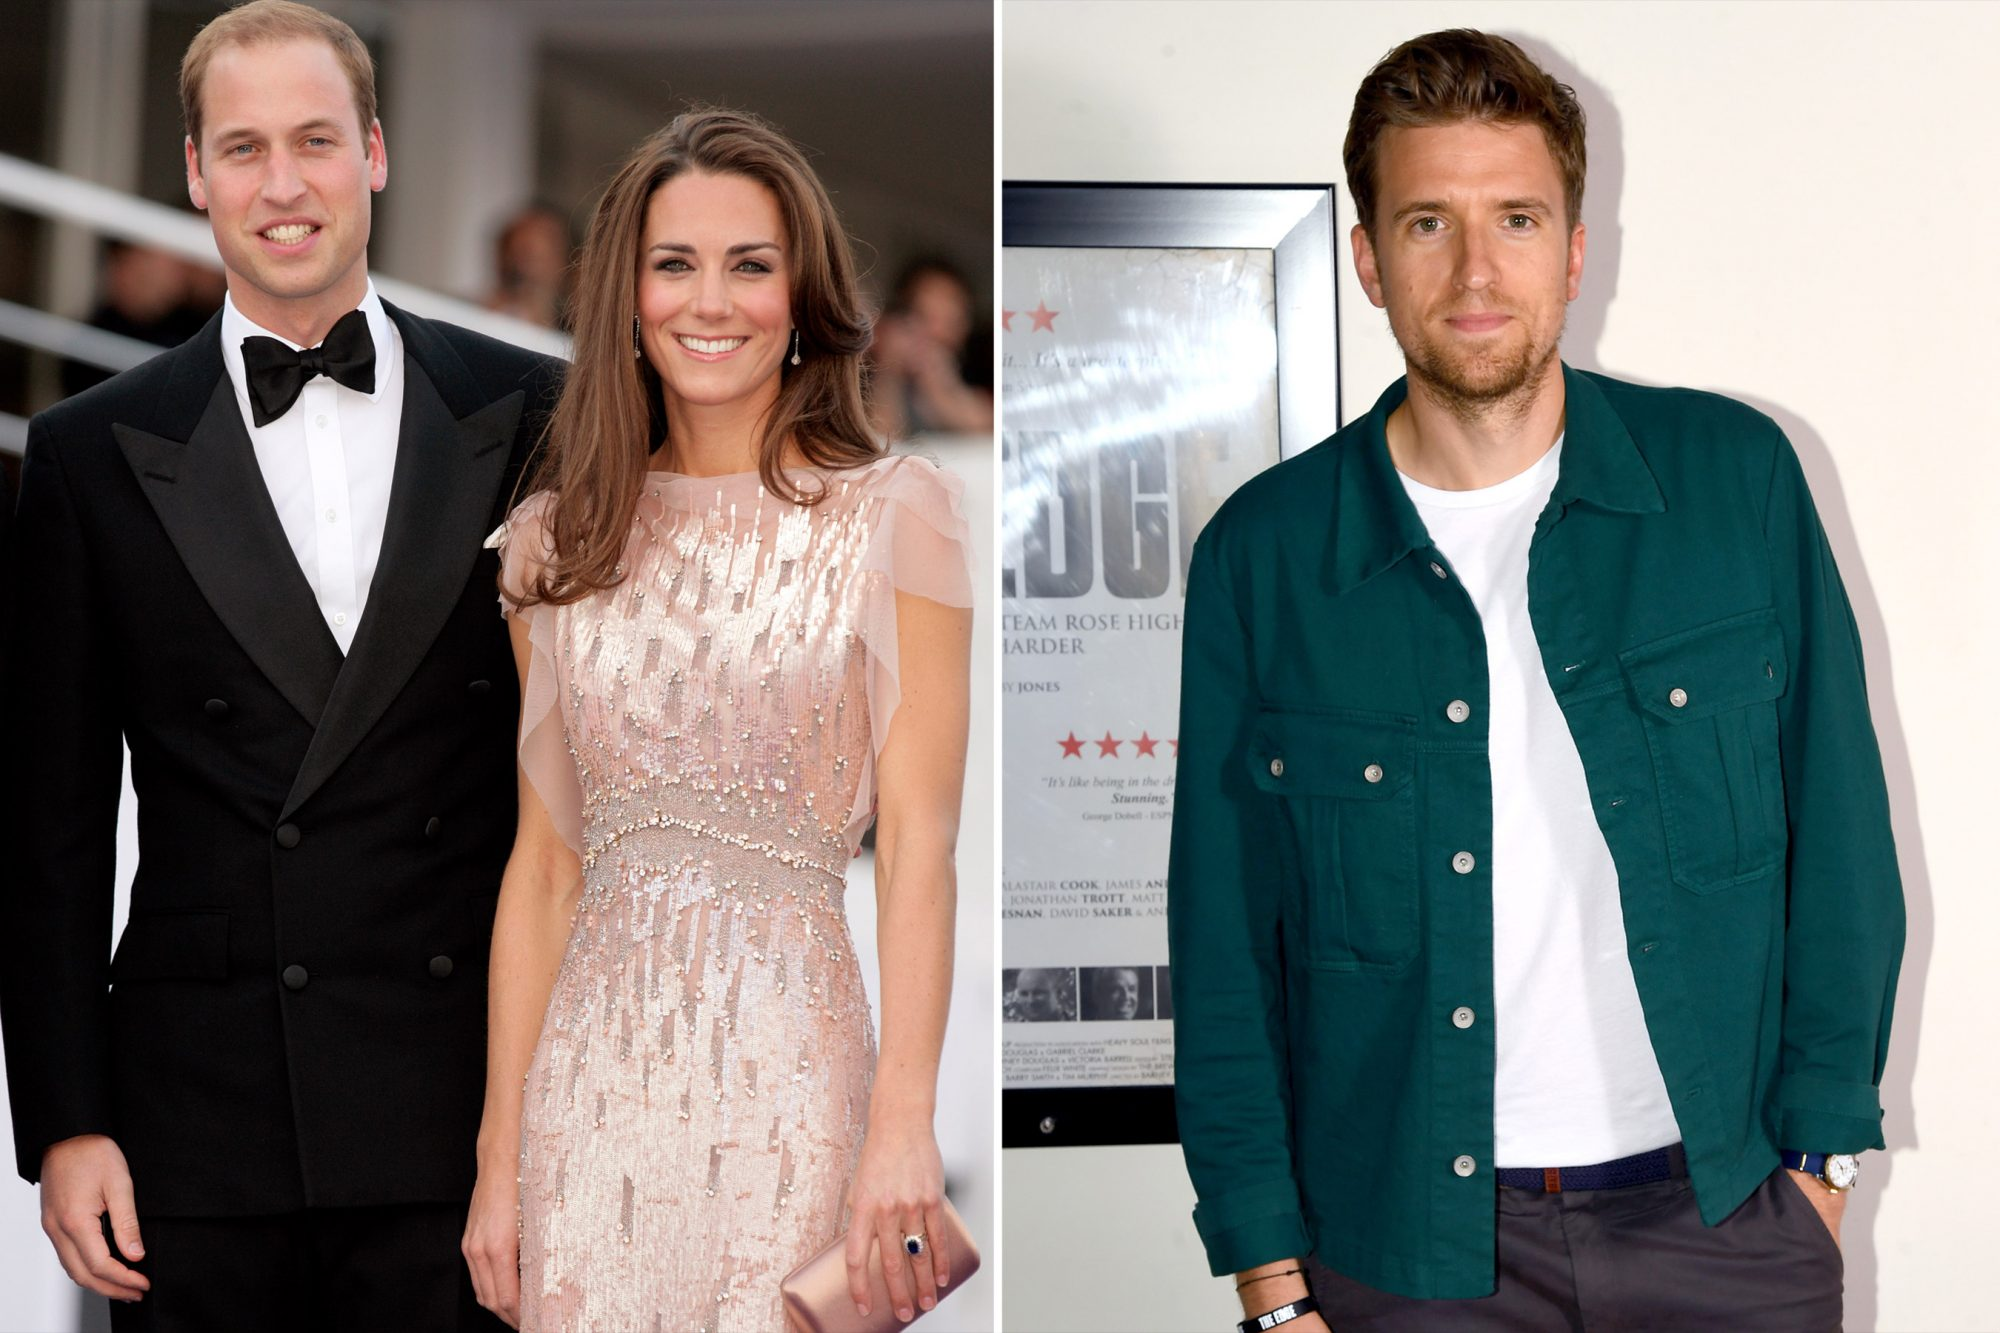 Greg James, Prince William, Duke of Cambridge and Catherine, Duchess of Cambridge